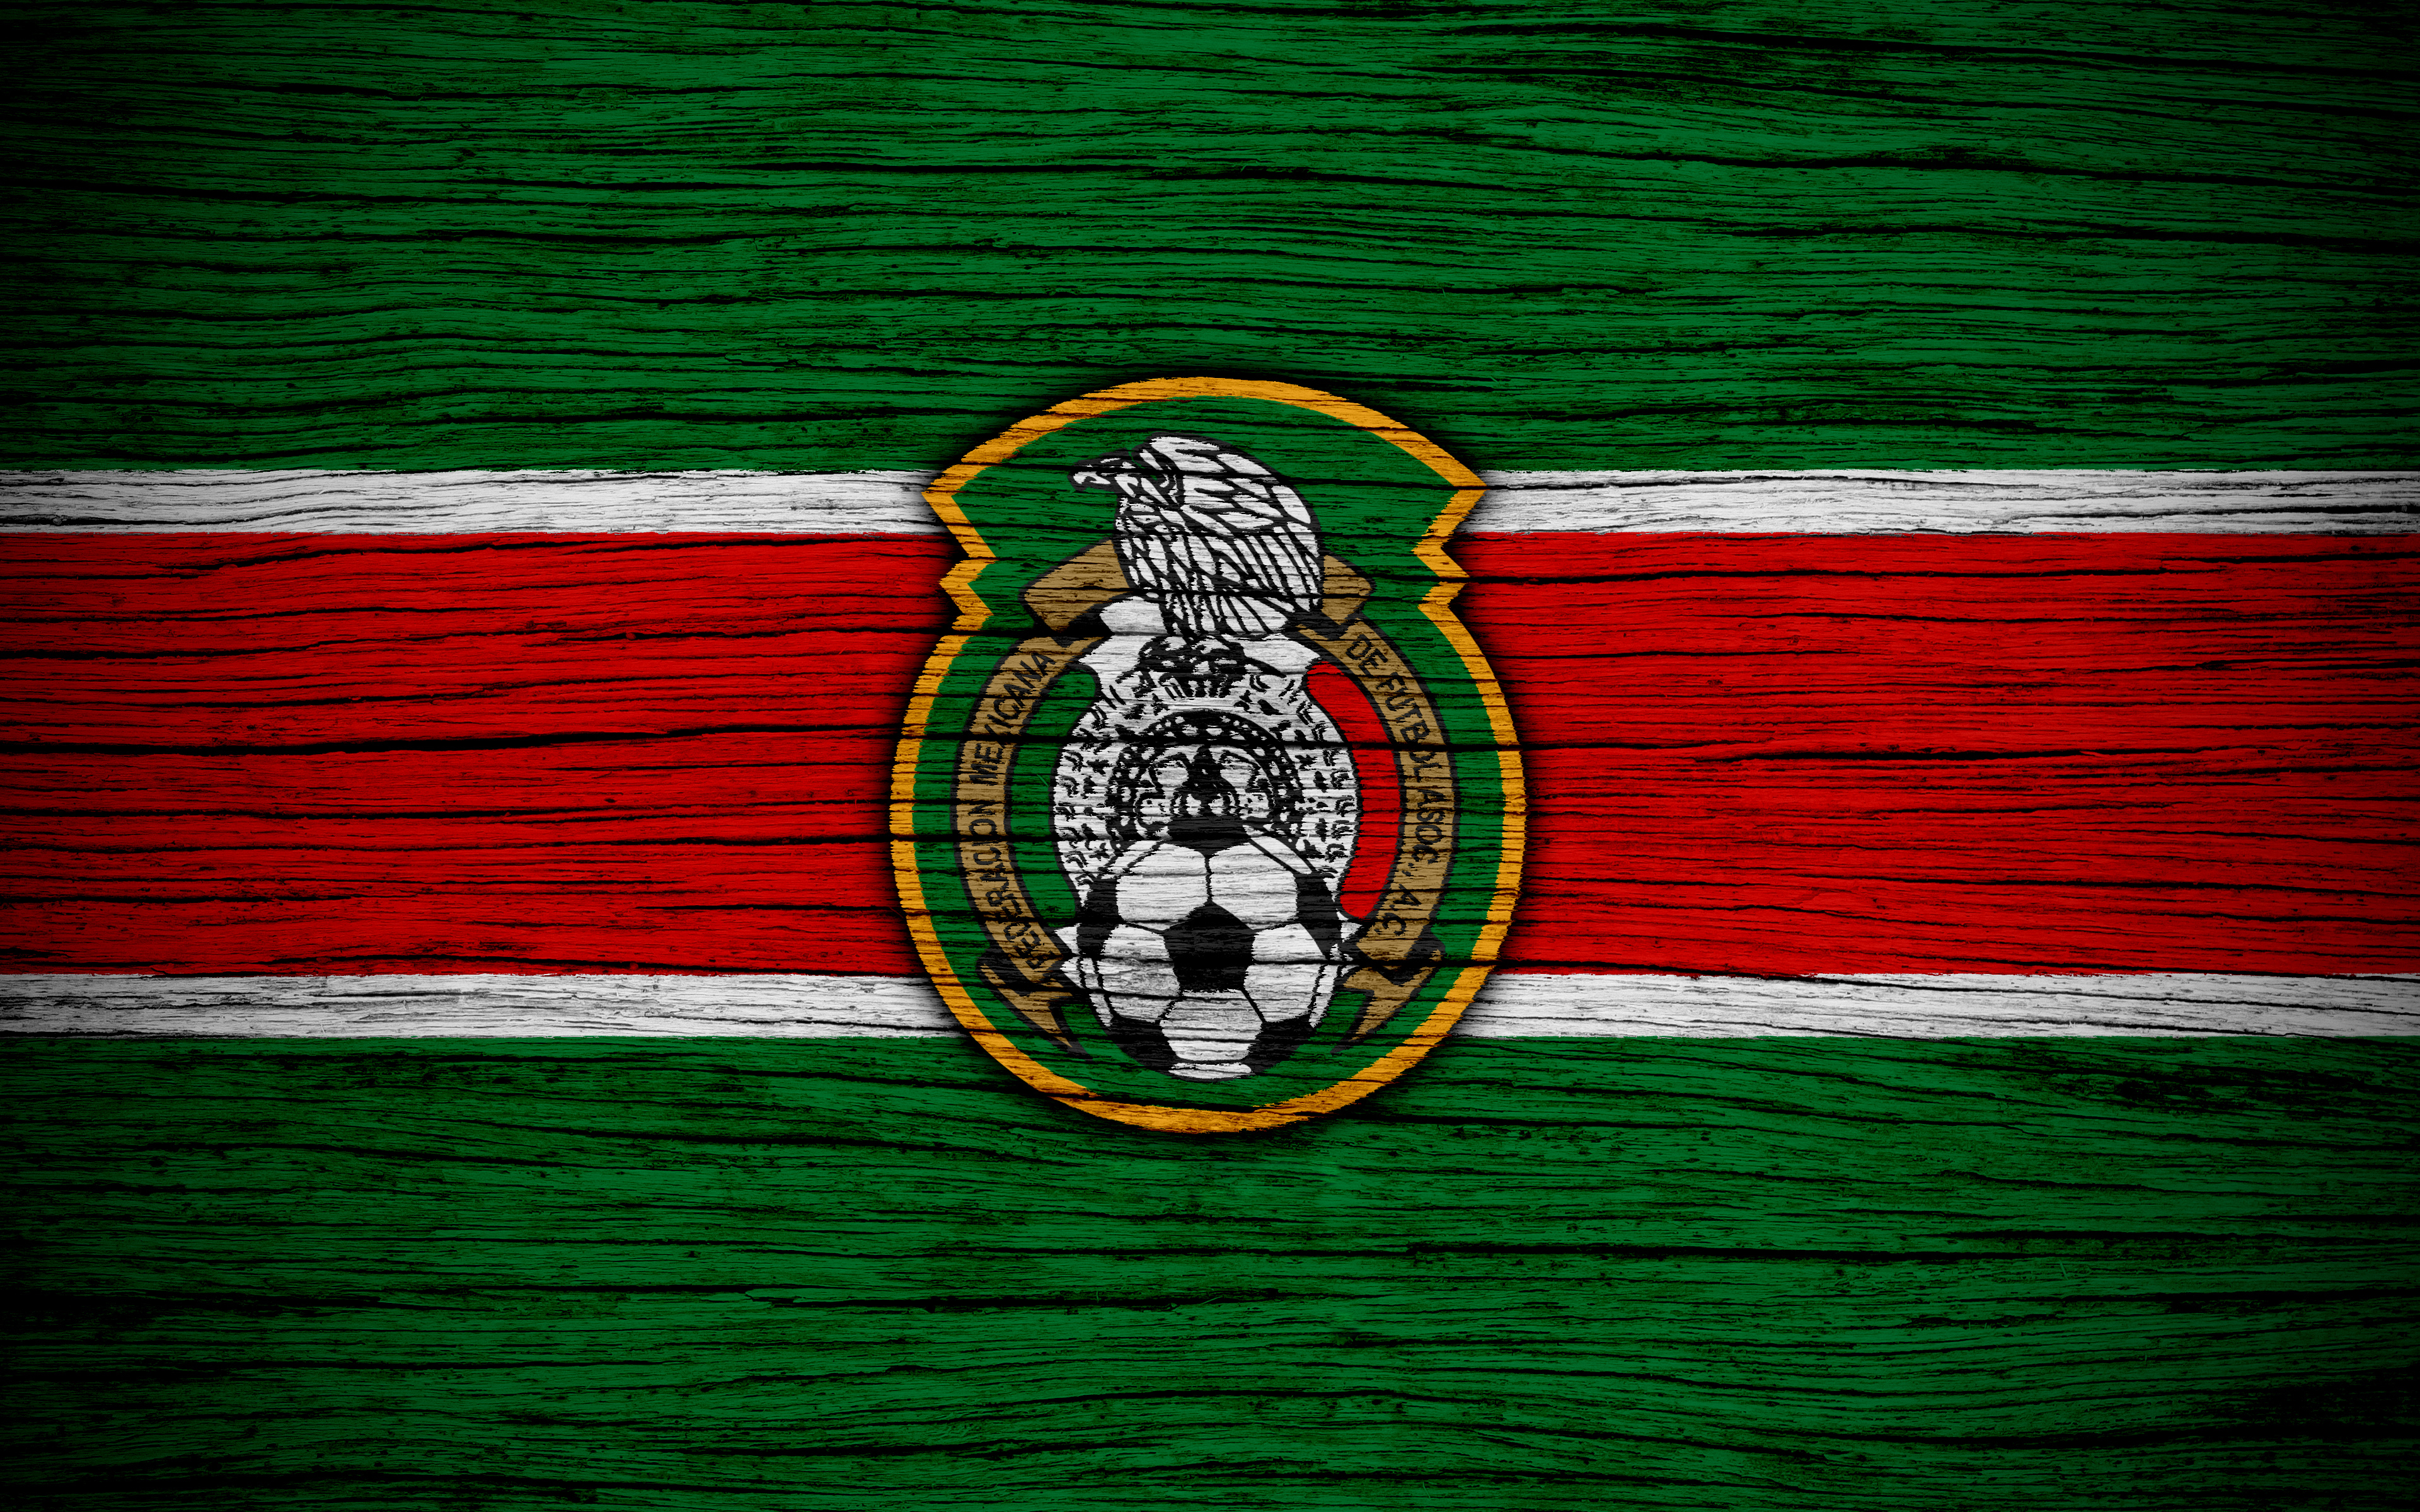 Mexico National Football Team 4k Ultra Hd Wallpaper Background